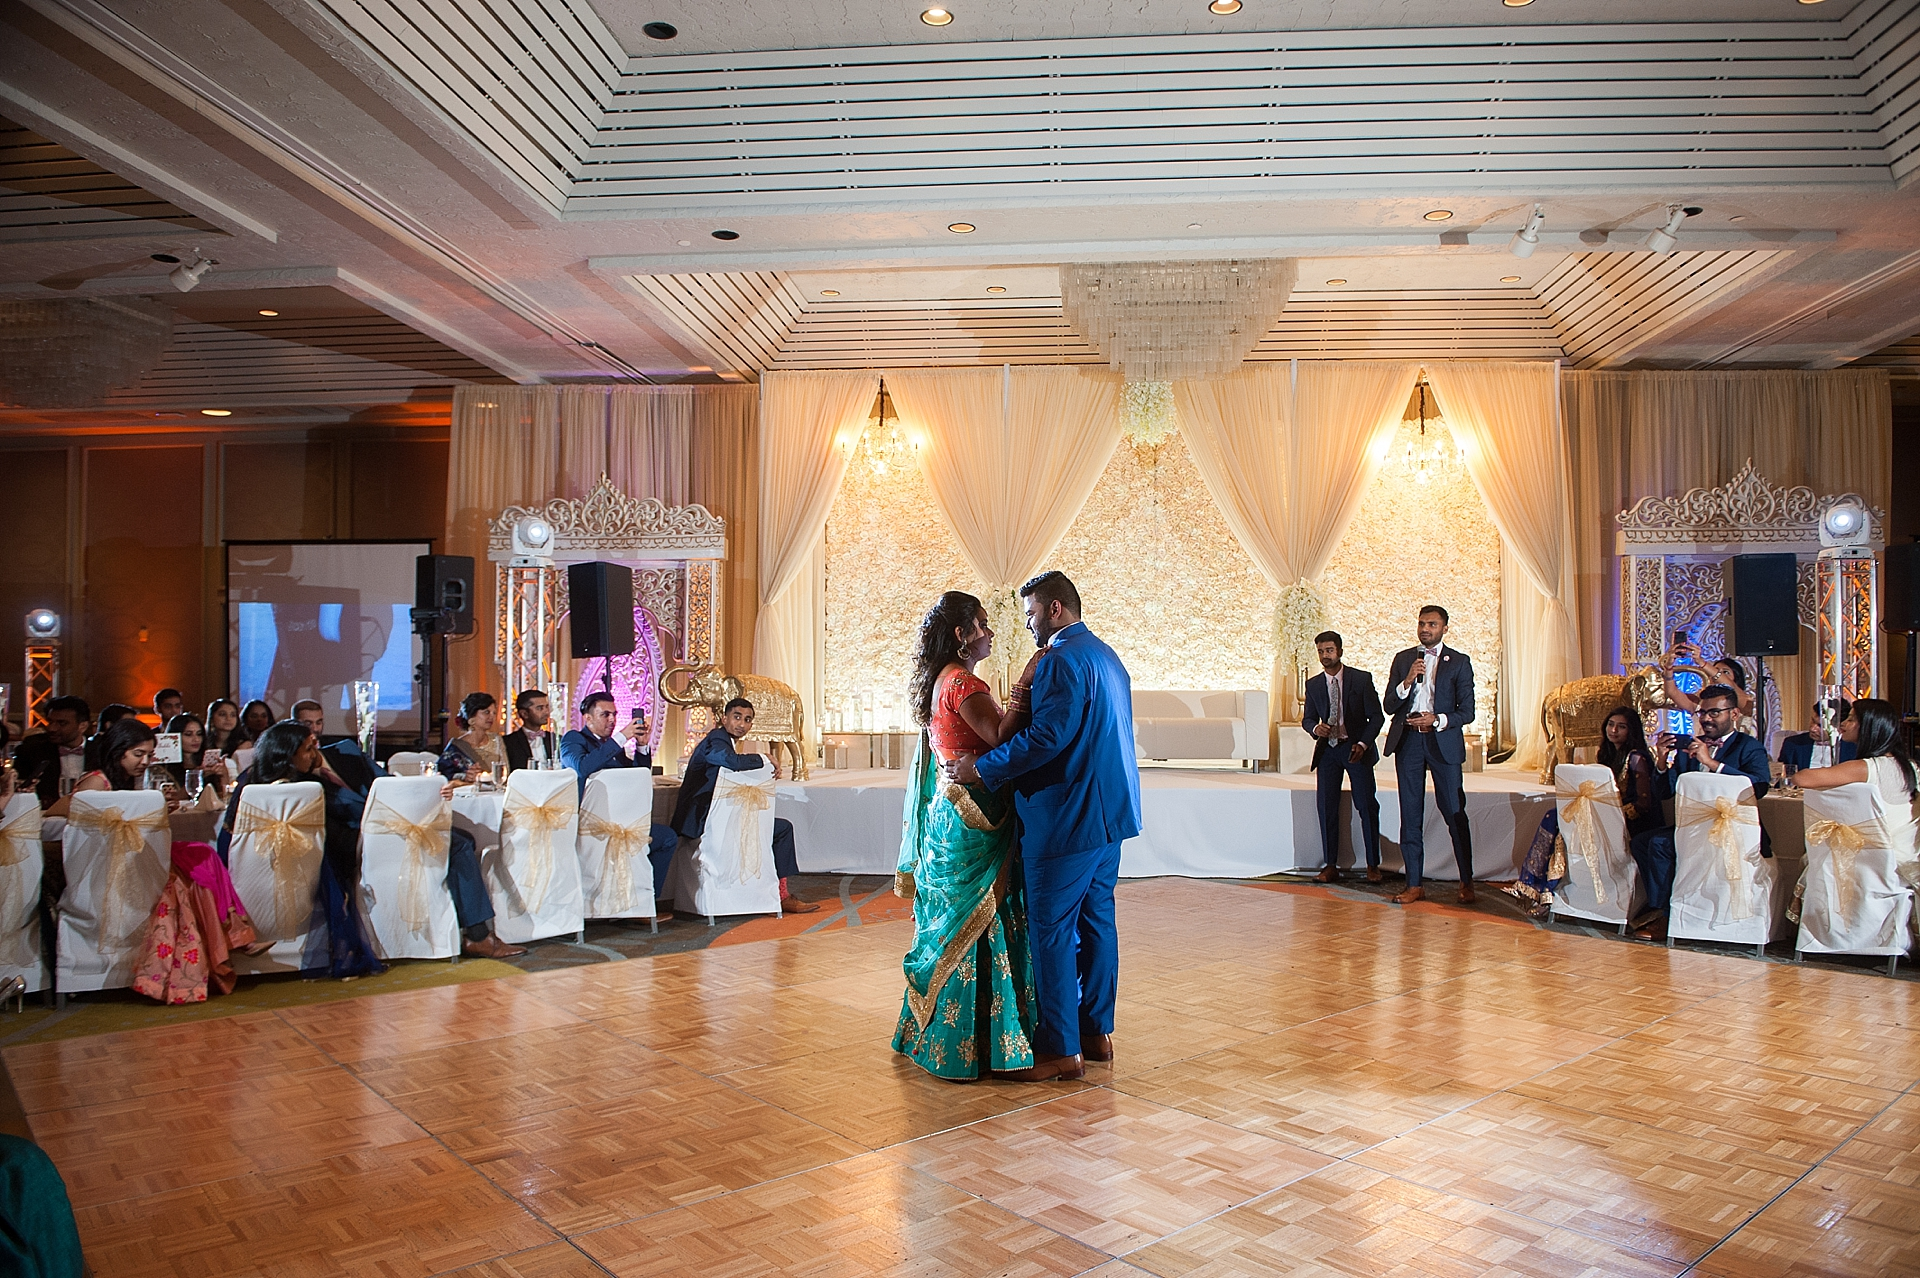 Prexa_Harry_Columbus_Crown_Plaza_Indian_Wedding0104.jpg